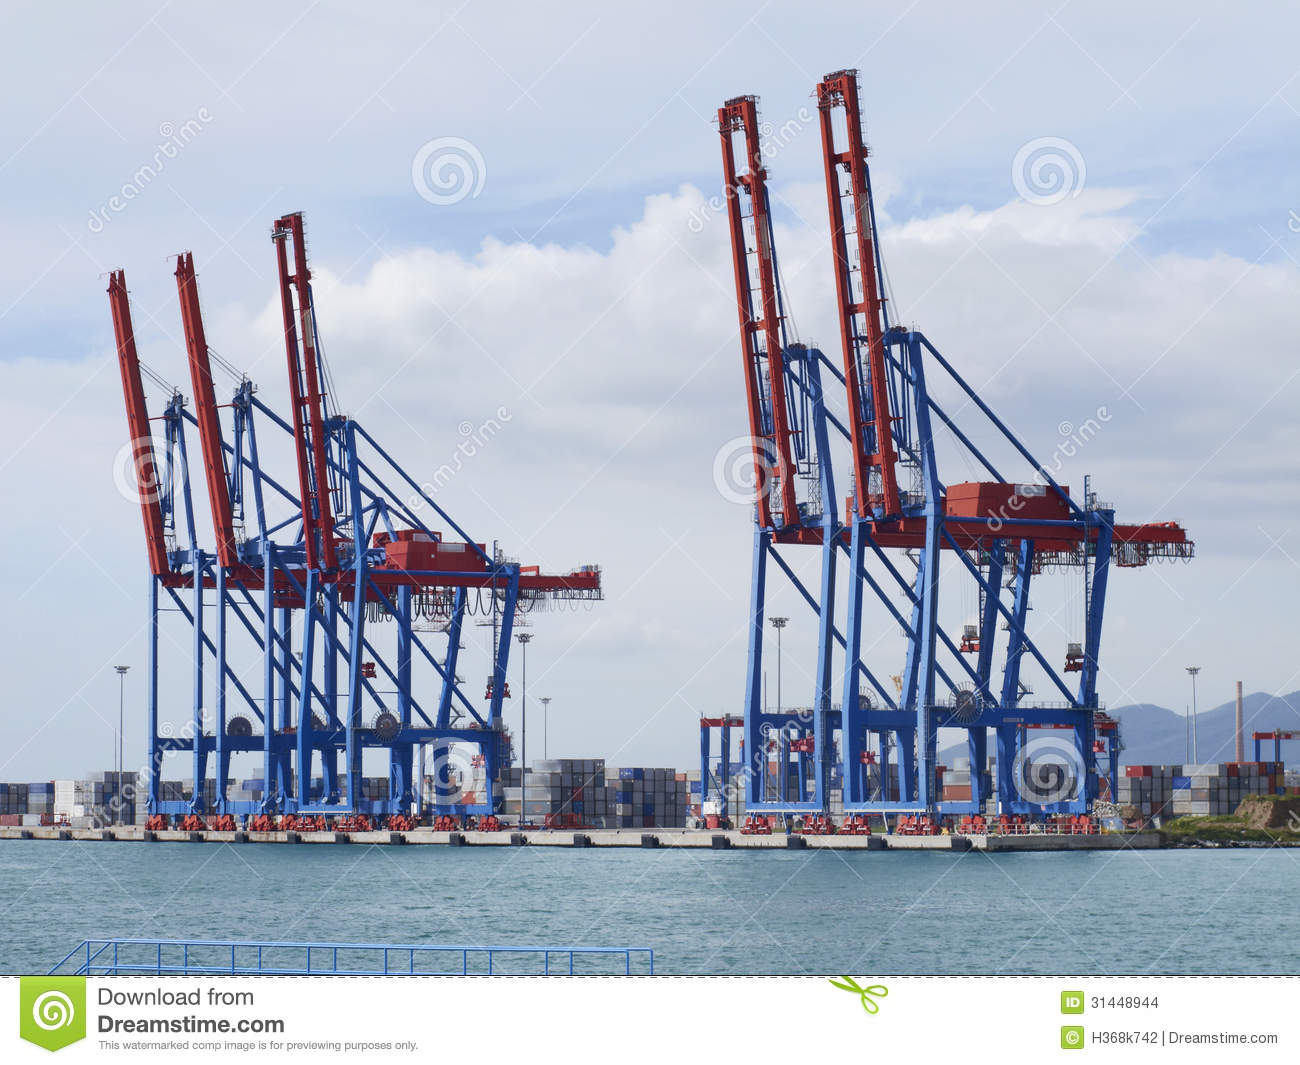 Harbor Freight Gantry Crane >> Container Terminal With Gantry Cranes Stock Images - Image ...